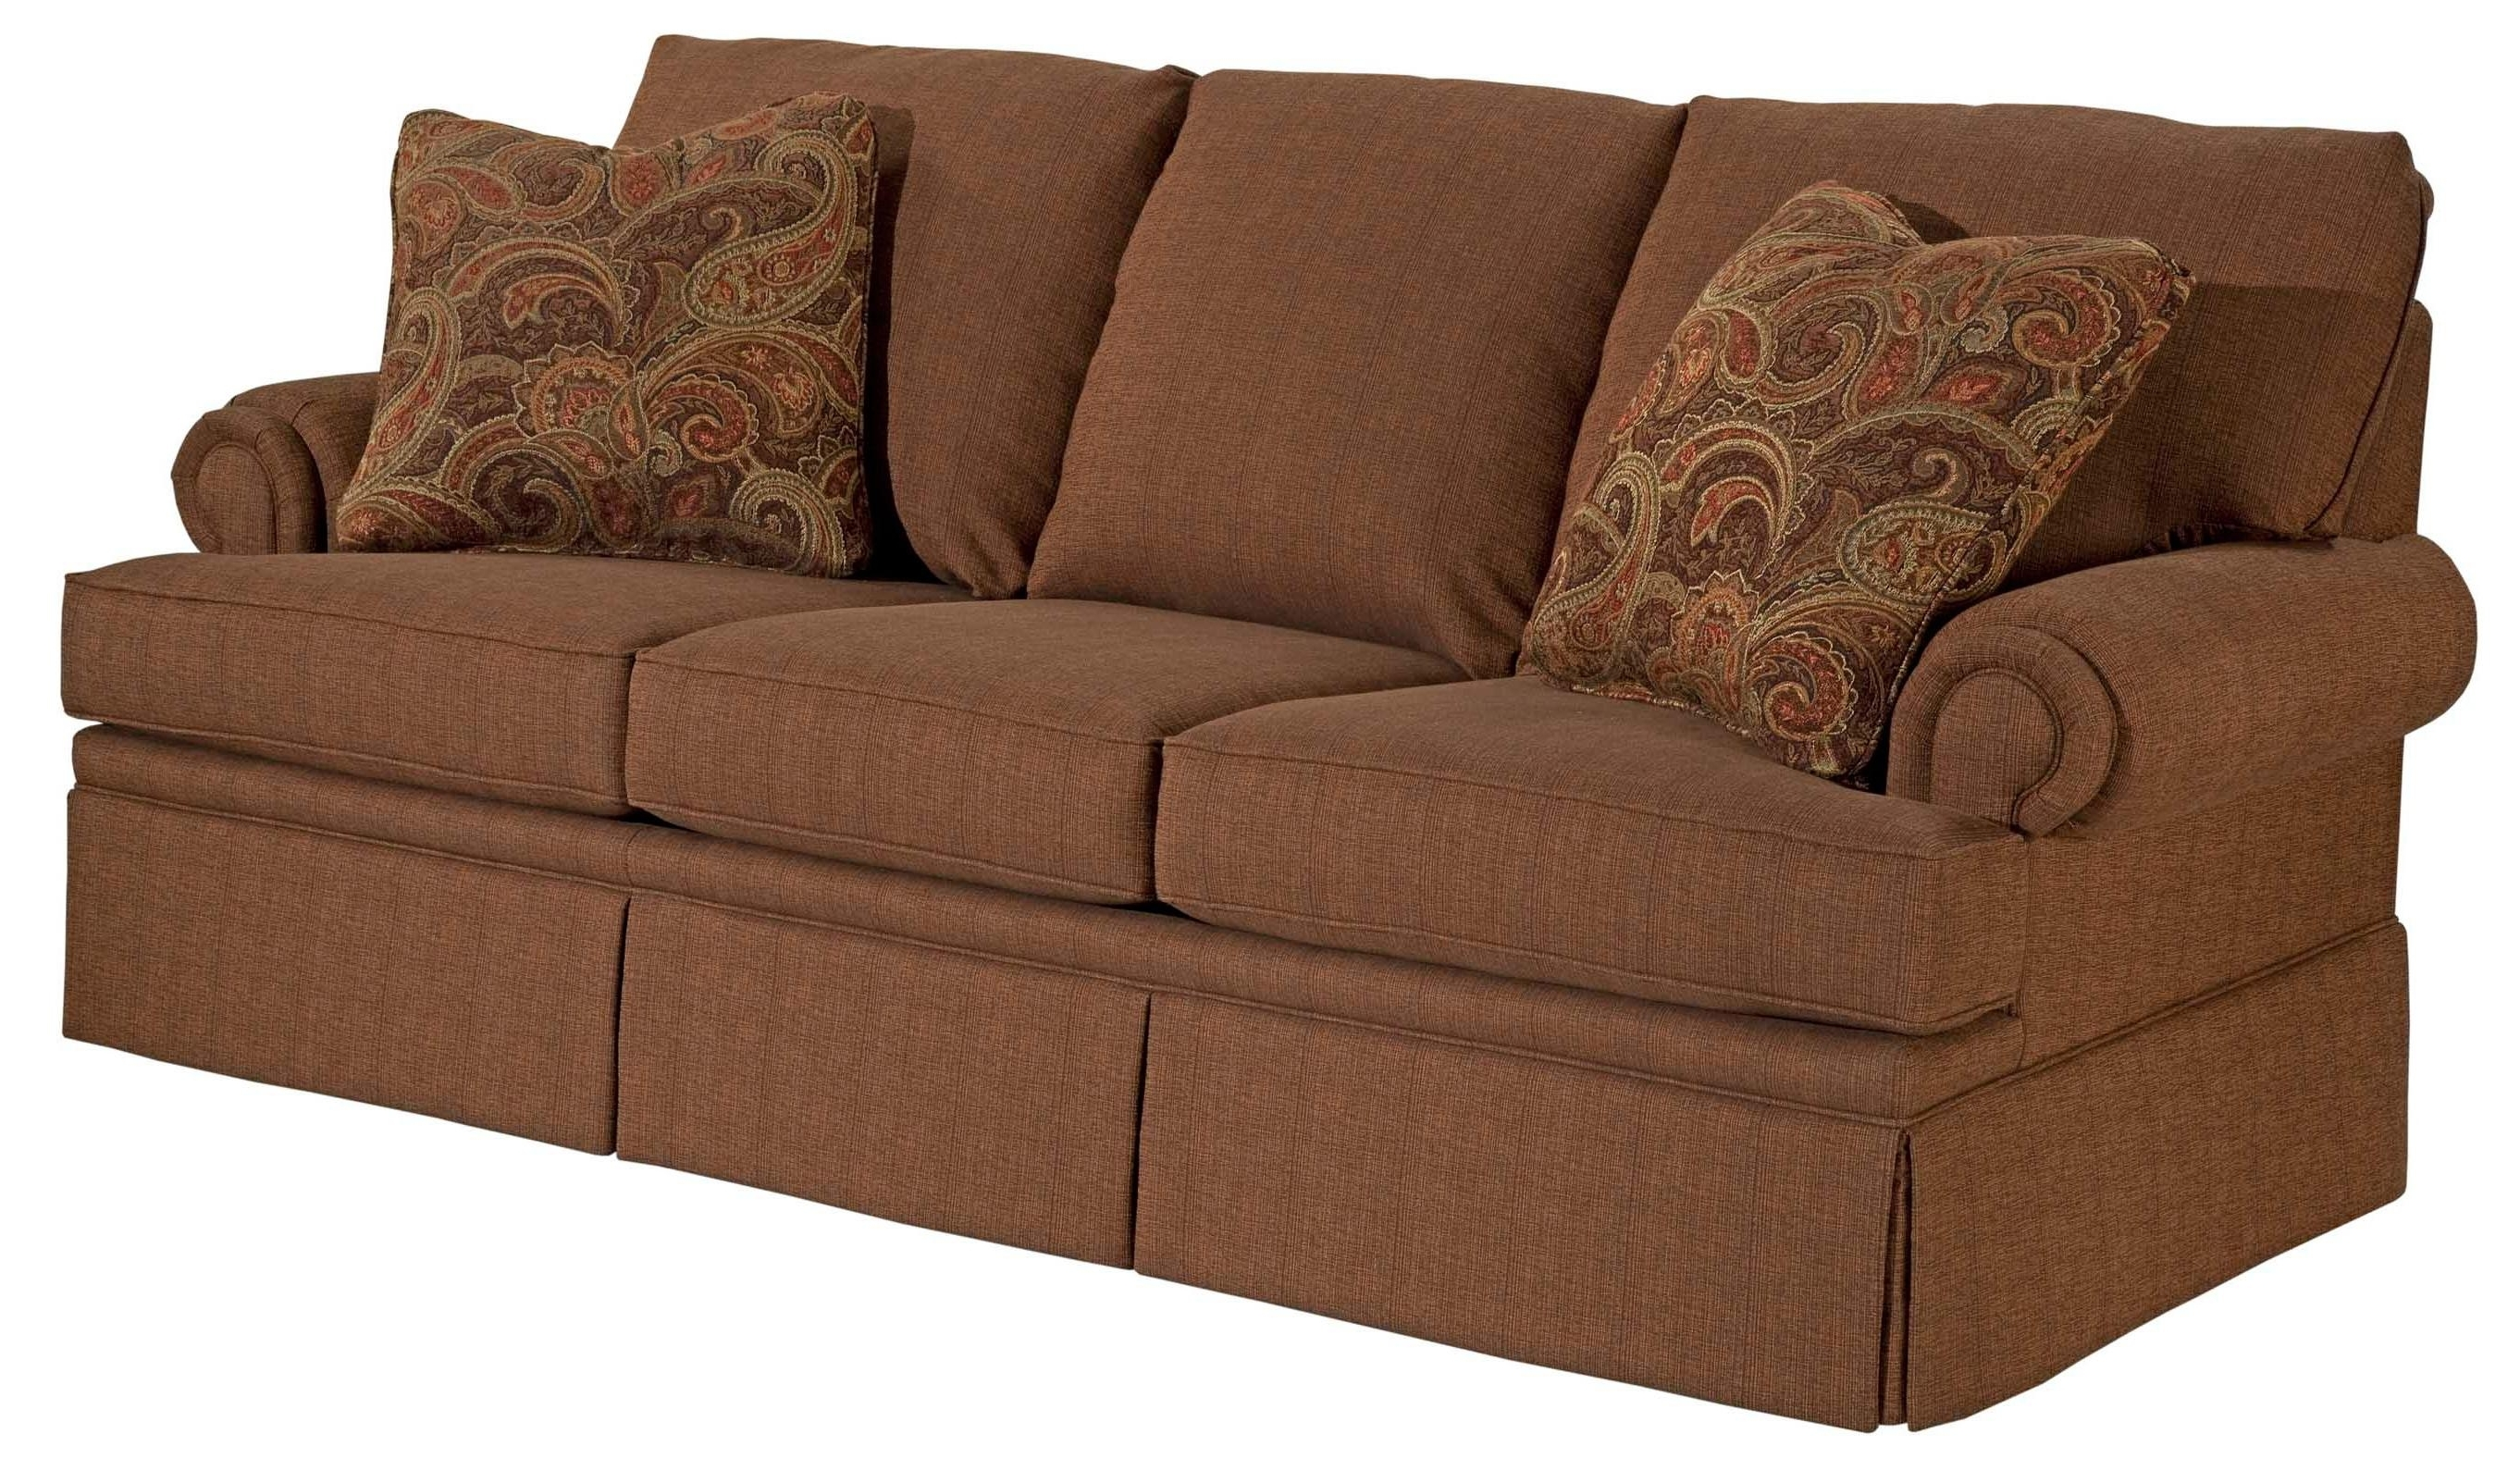 Broyhill Furniture Jenna Air Dream Sofa Sleeper With Queen Size Pertaining To Most Popular Quincy Il Sectional Sofas (View 8 of 20)